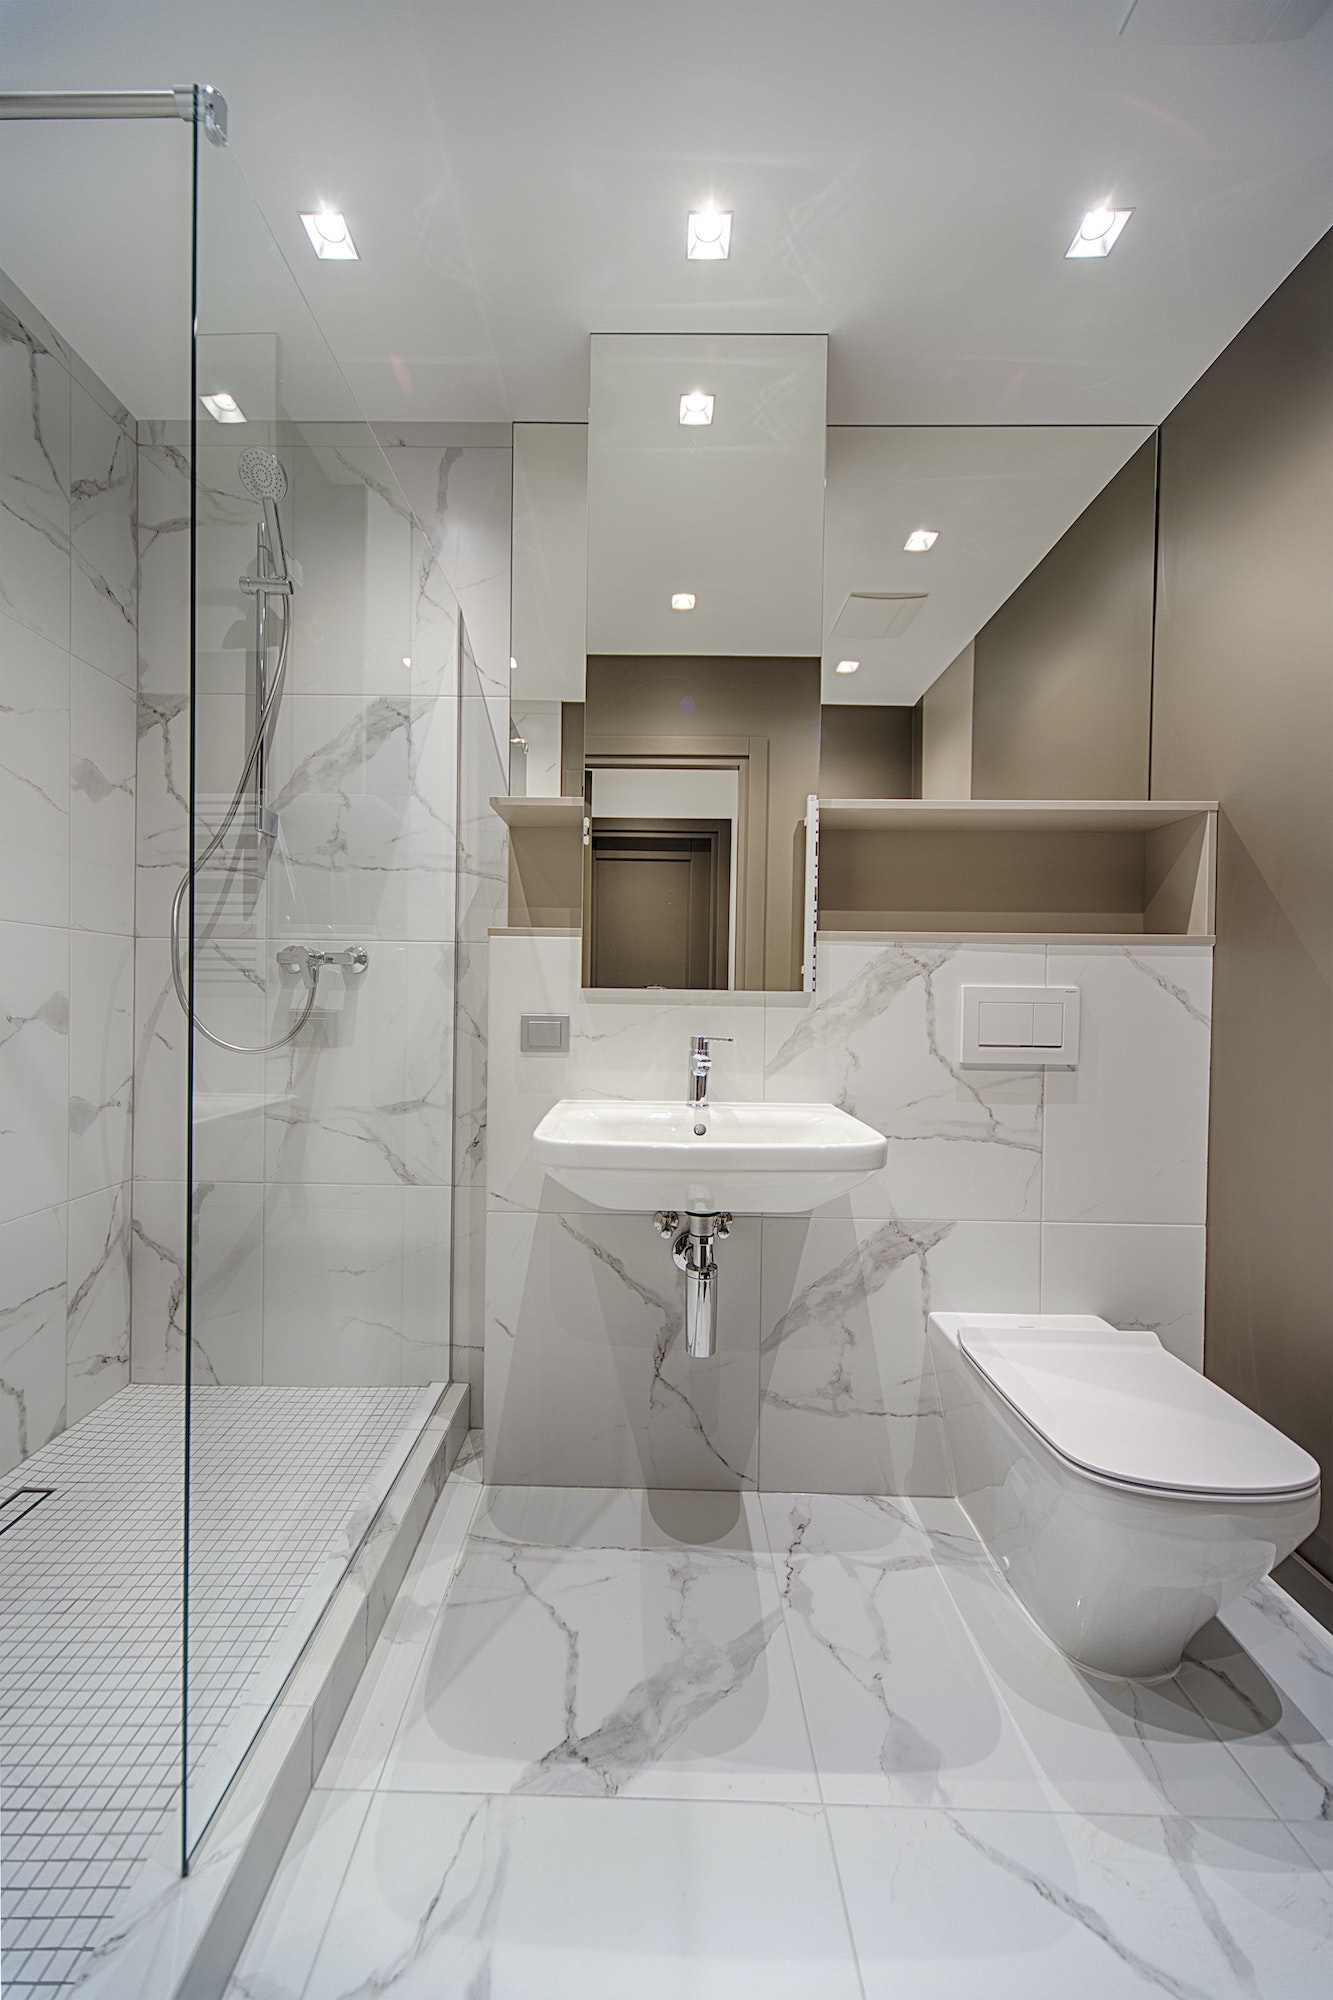 7 Things to Know Before Choosing and Installing Marble Flooring   Home Interiors   Elle Blonde Luxury Lifestyle Destination Blog